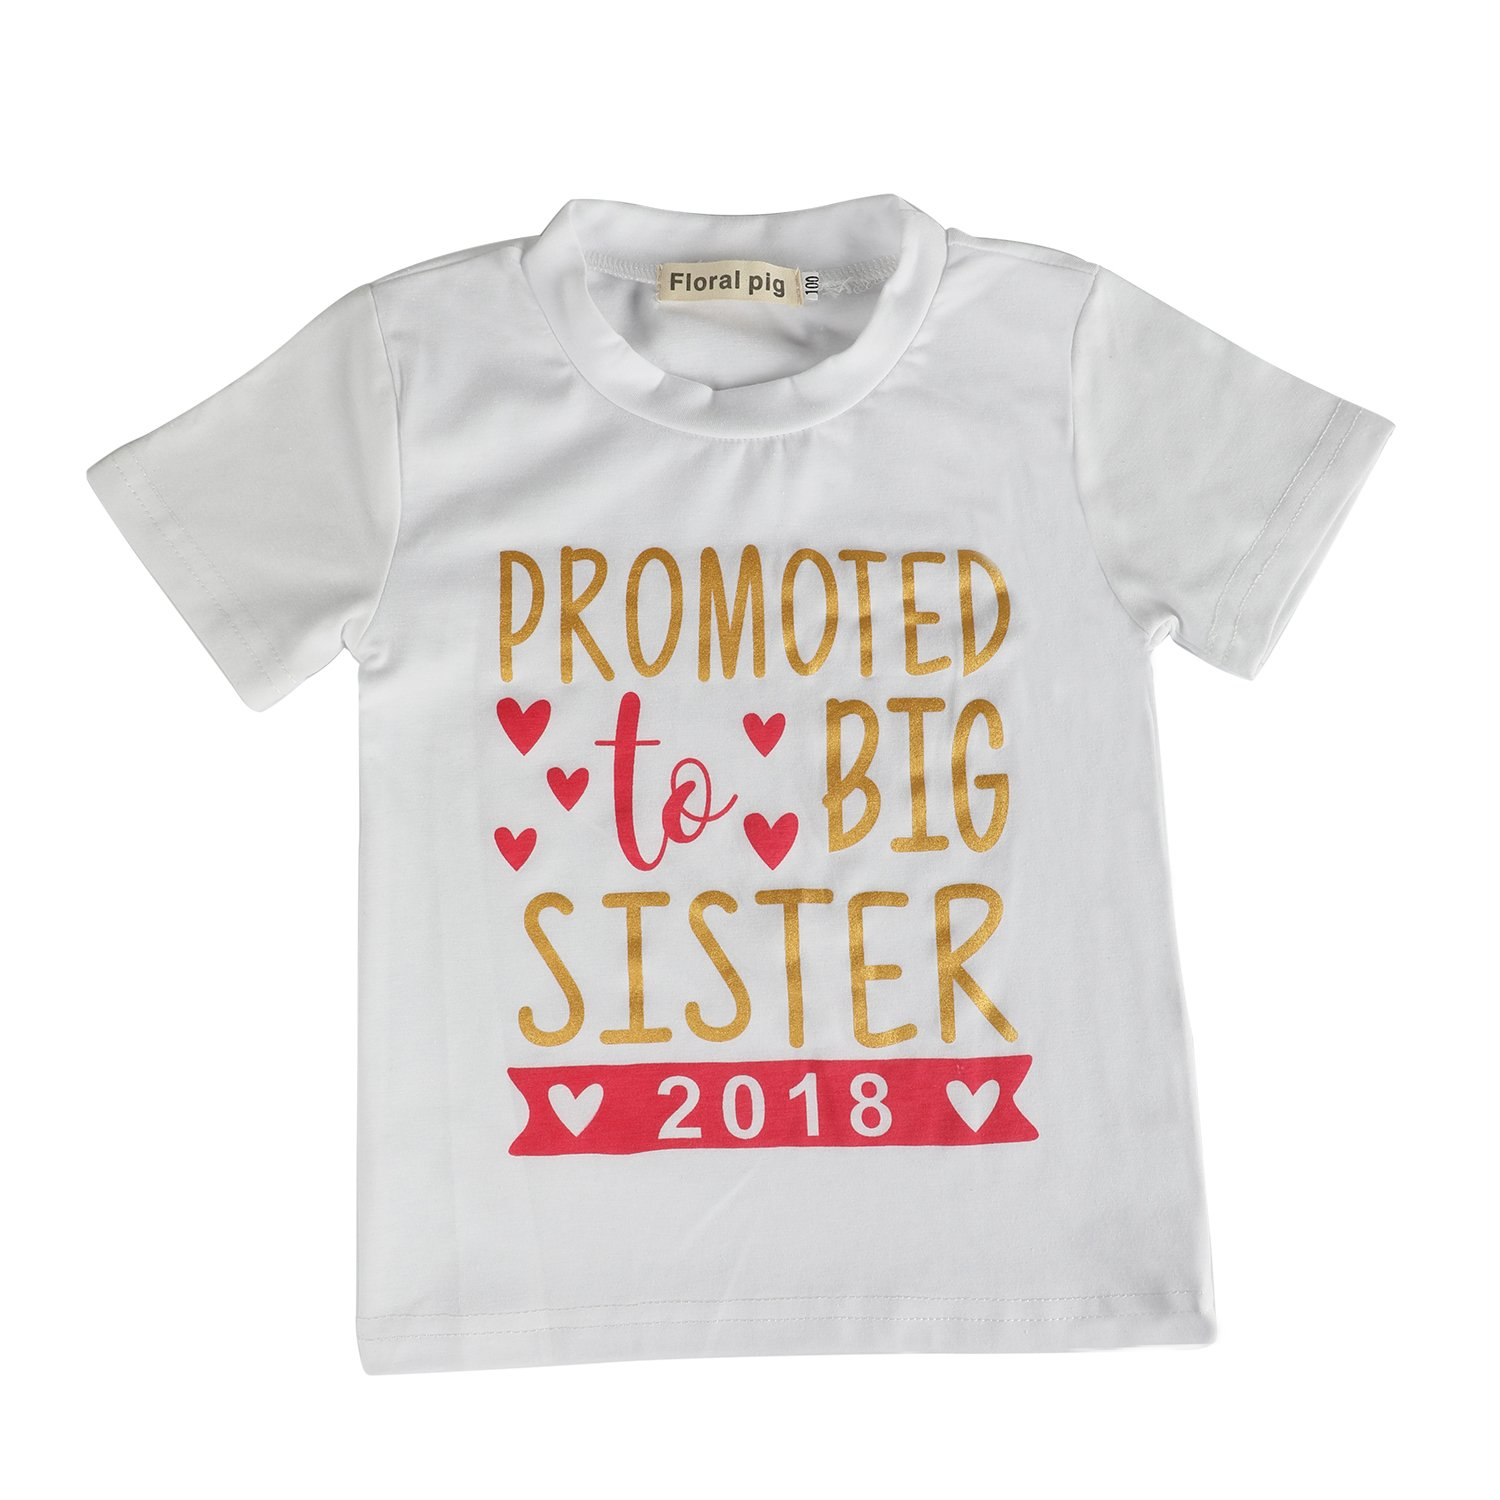 Kingte Toddler Big Sister Outfits Promoted to Big Sister Letter Print Short Sleeve Shirt White